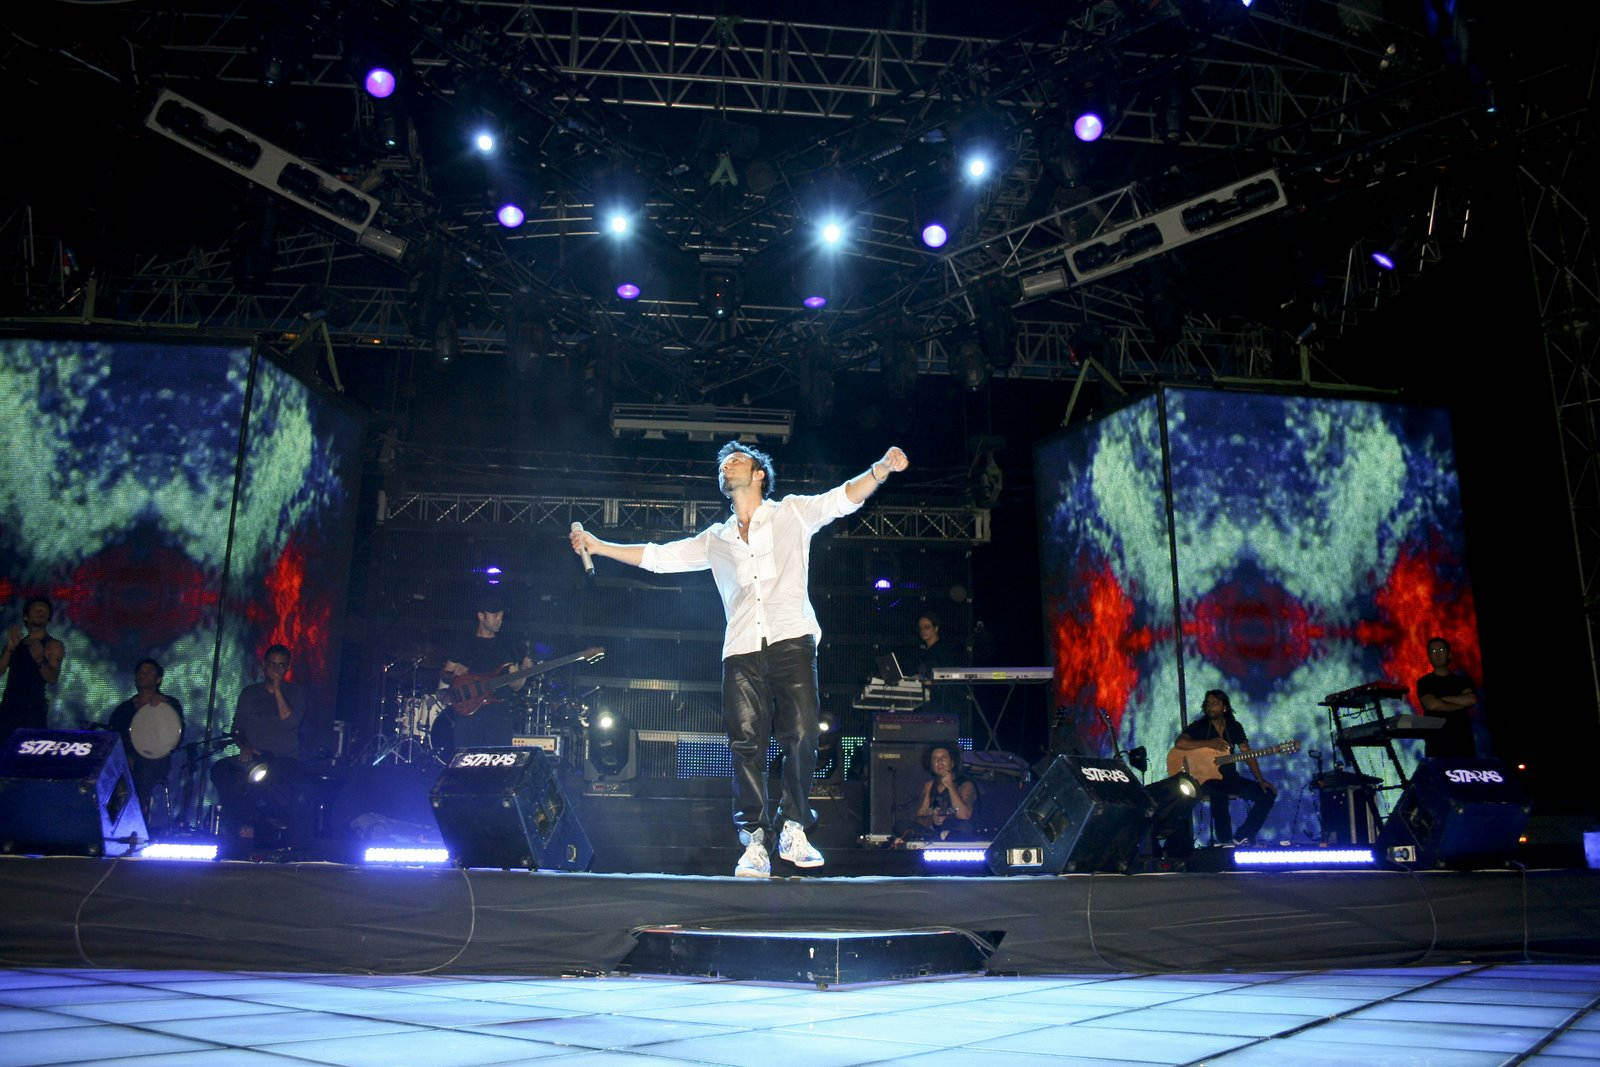 Tarkan in Ankara for Doritos concert © Dilek Telcioğlu